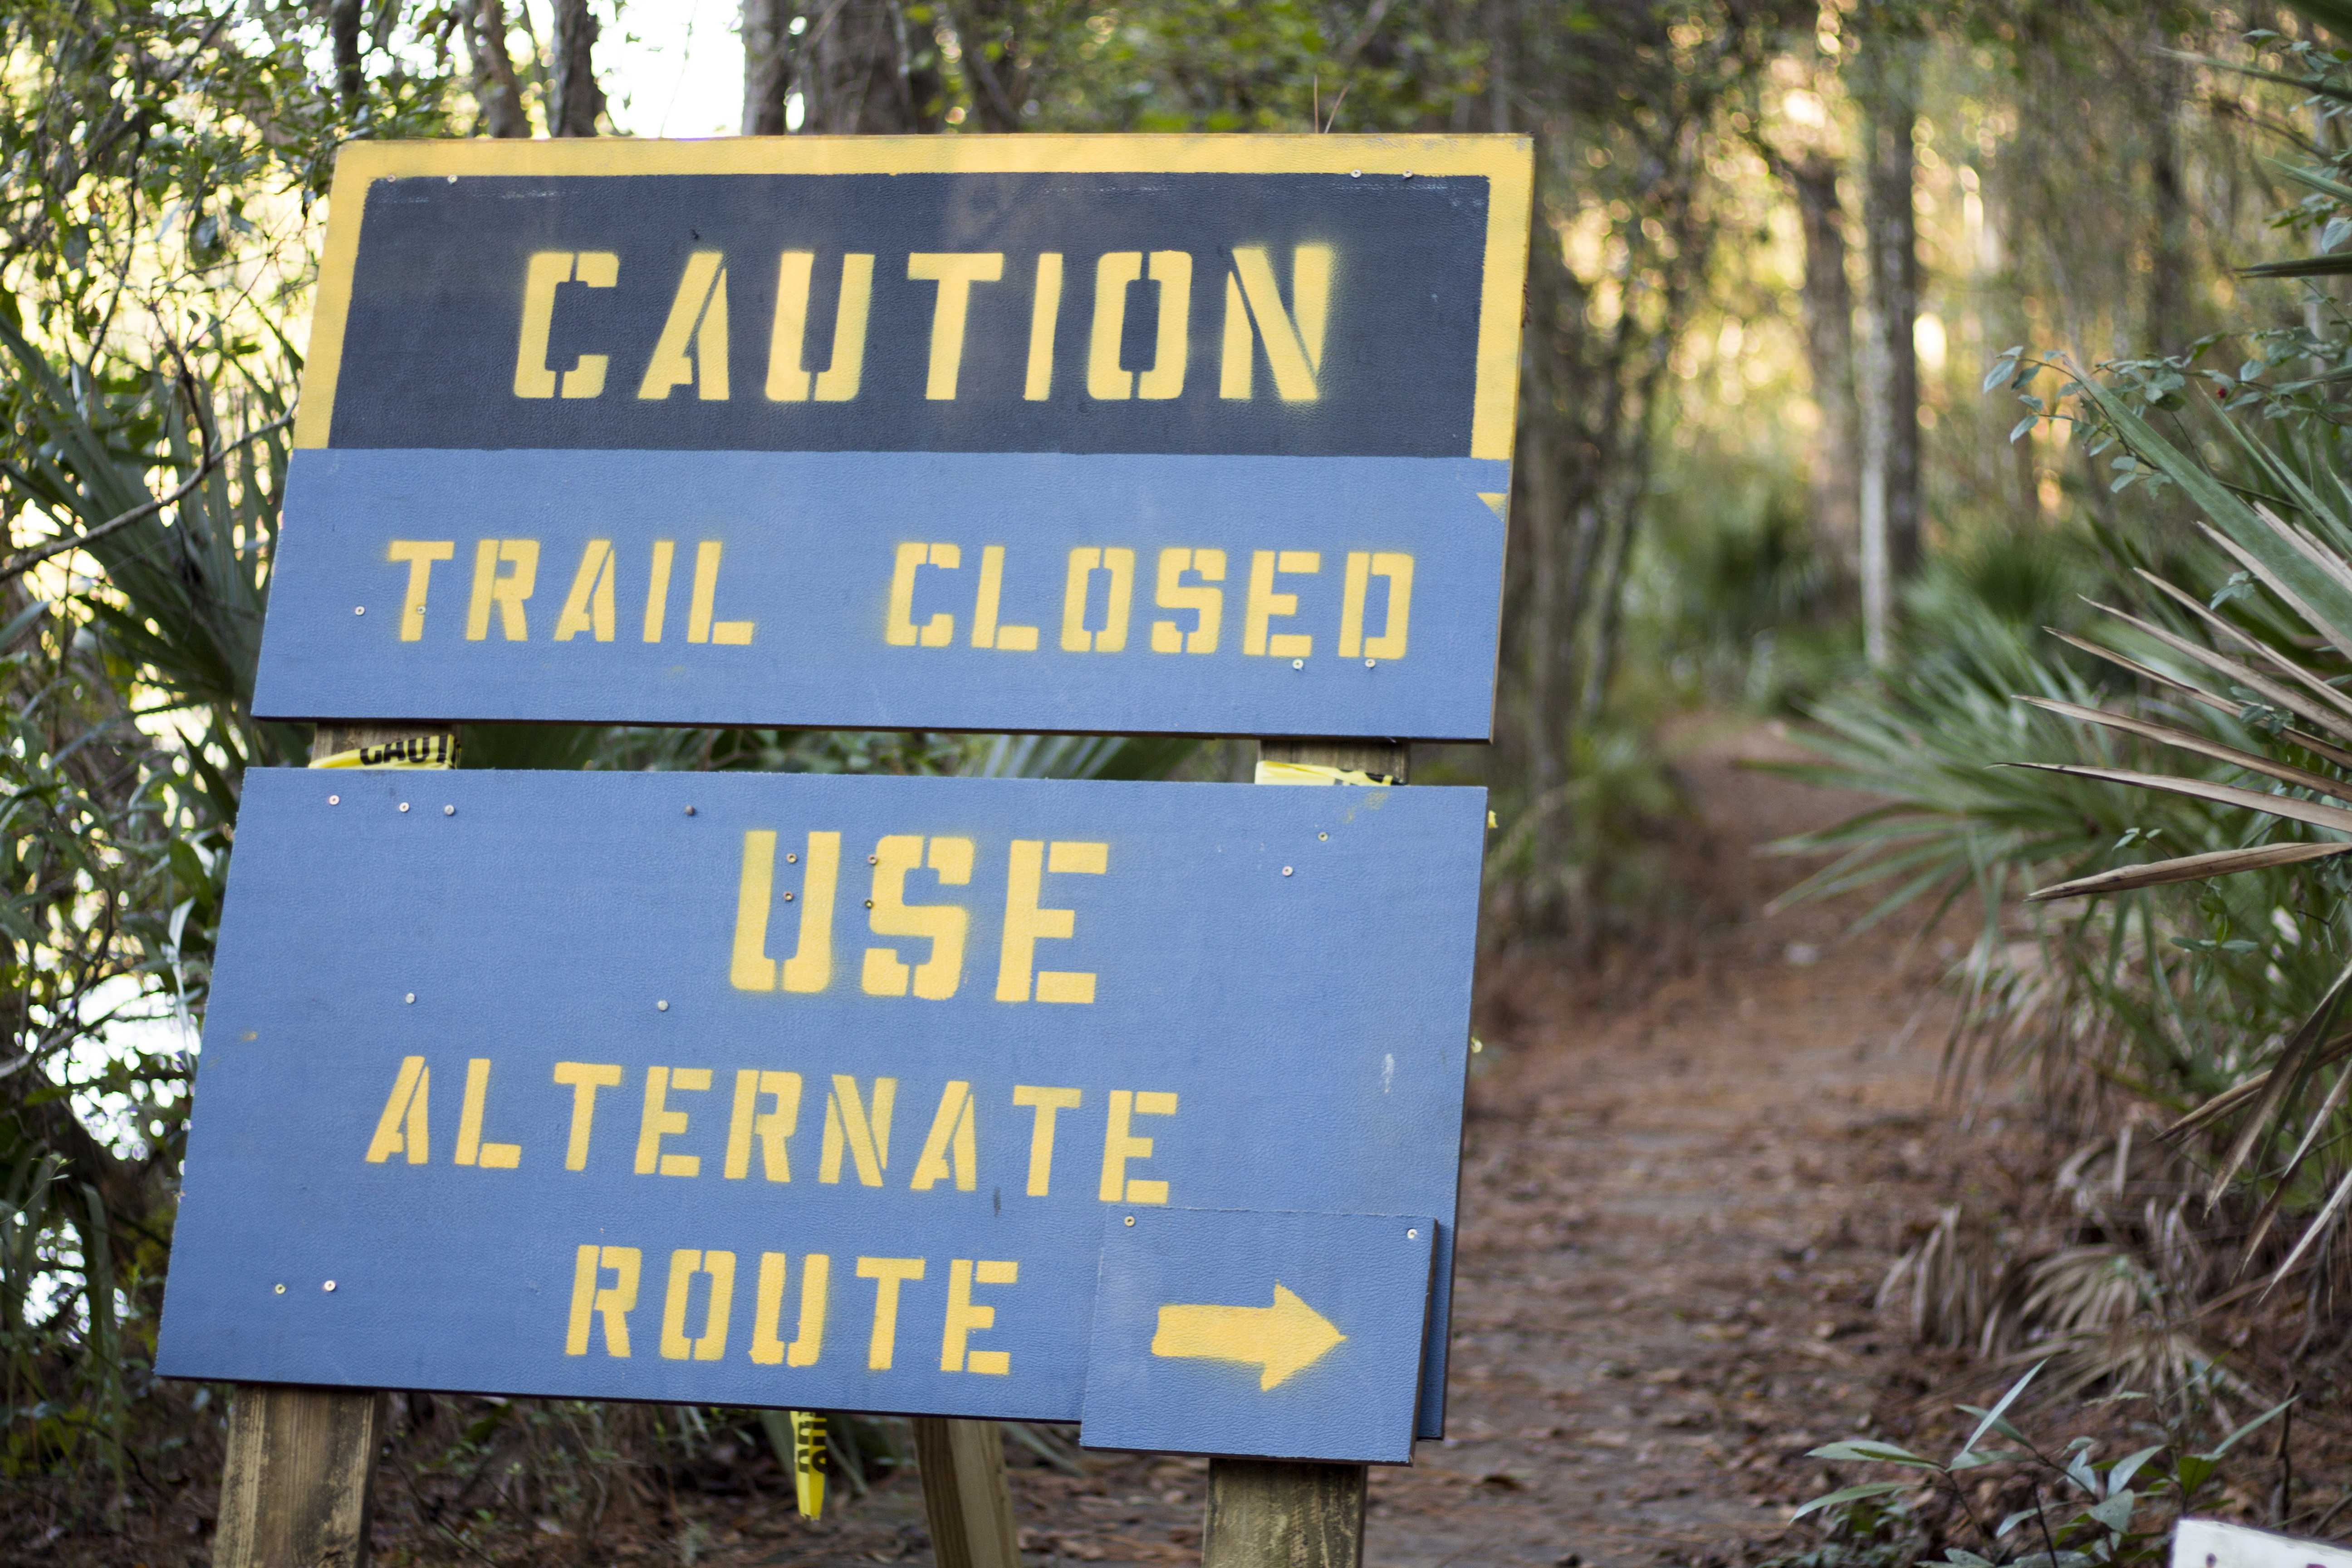 UNF trails to be repaired: a deeper look